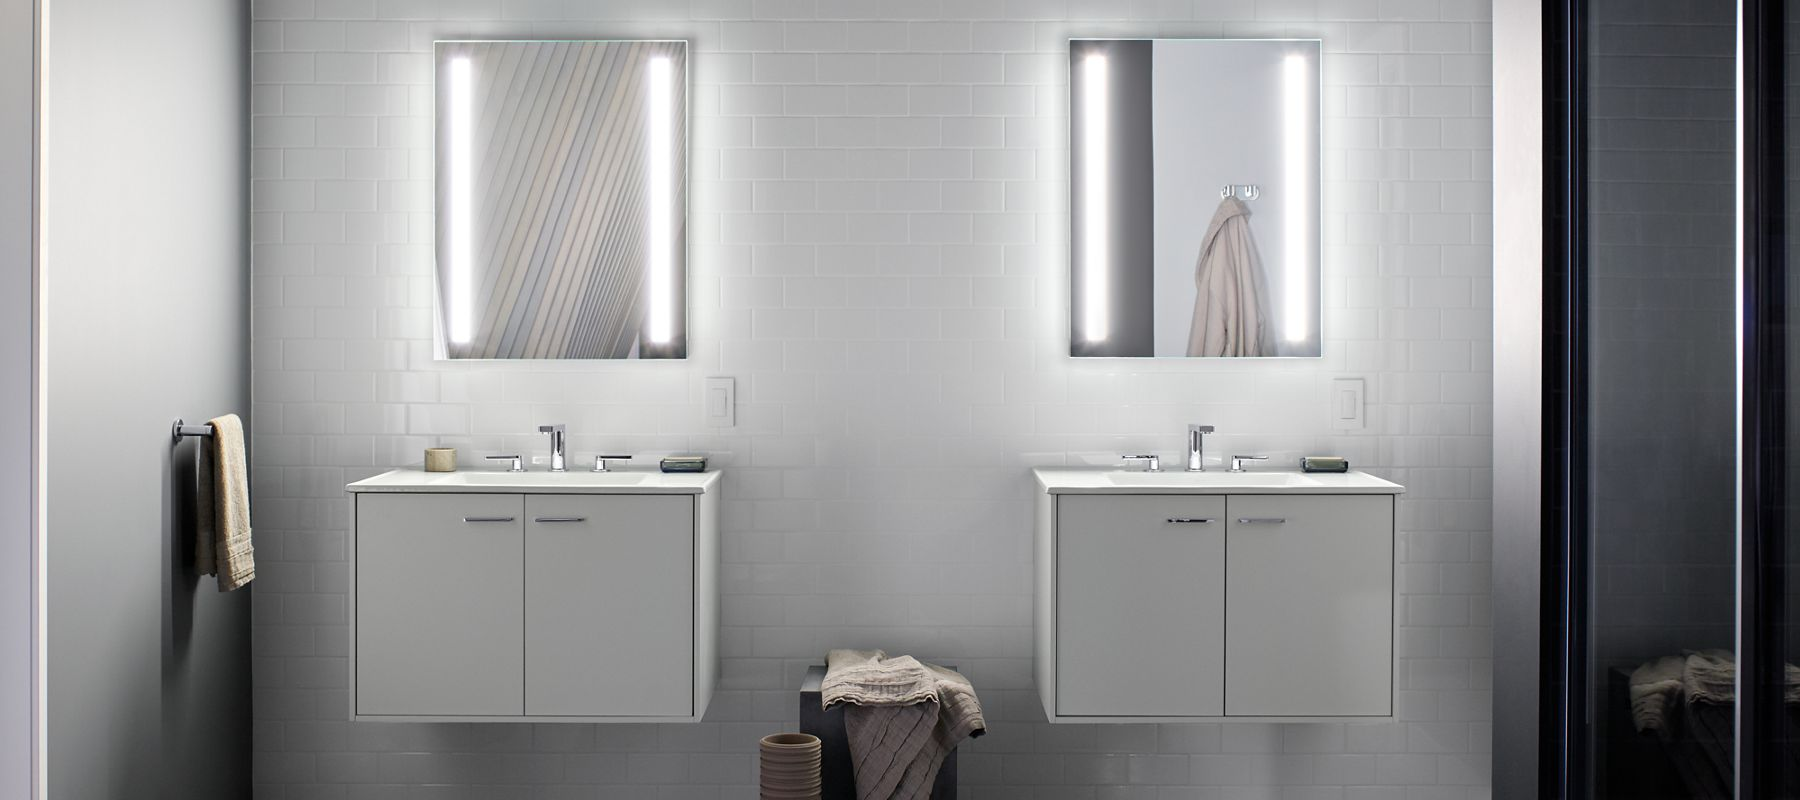 bathrooms door cabinet light astonishing cabinets capeline in bathroom schneider illuminated impressive uk mirror on led